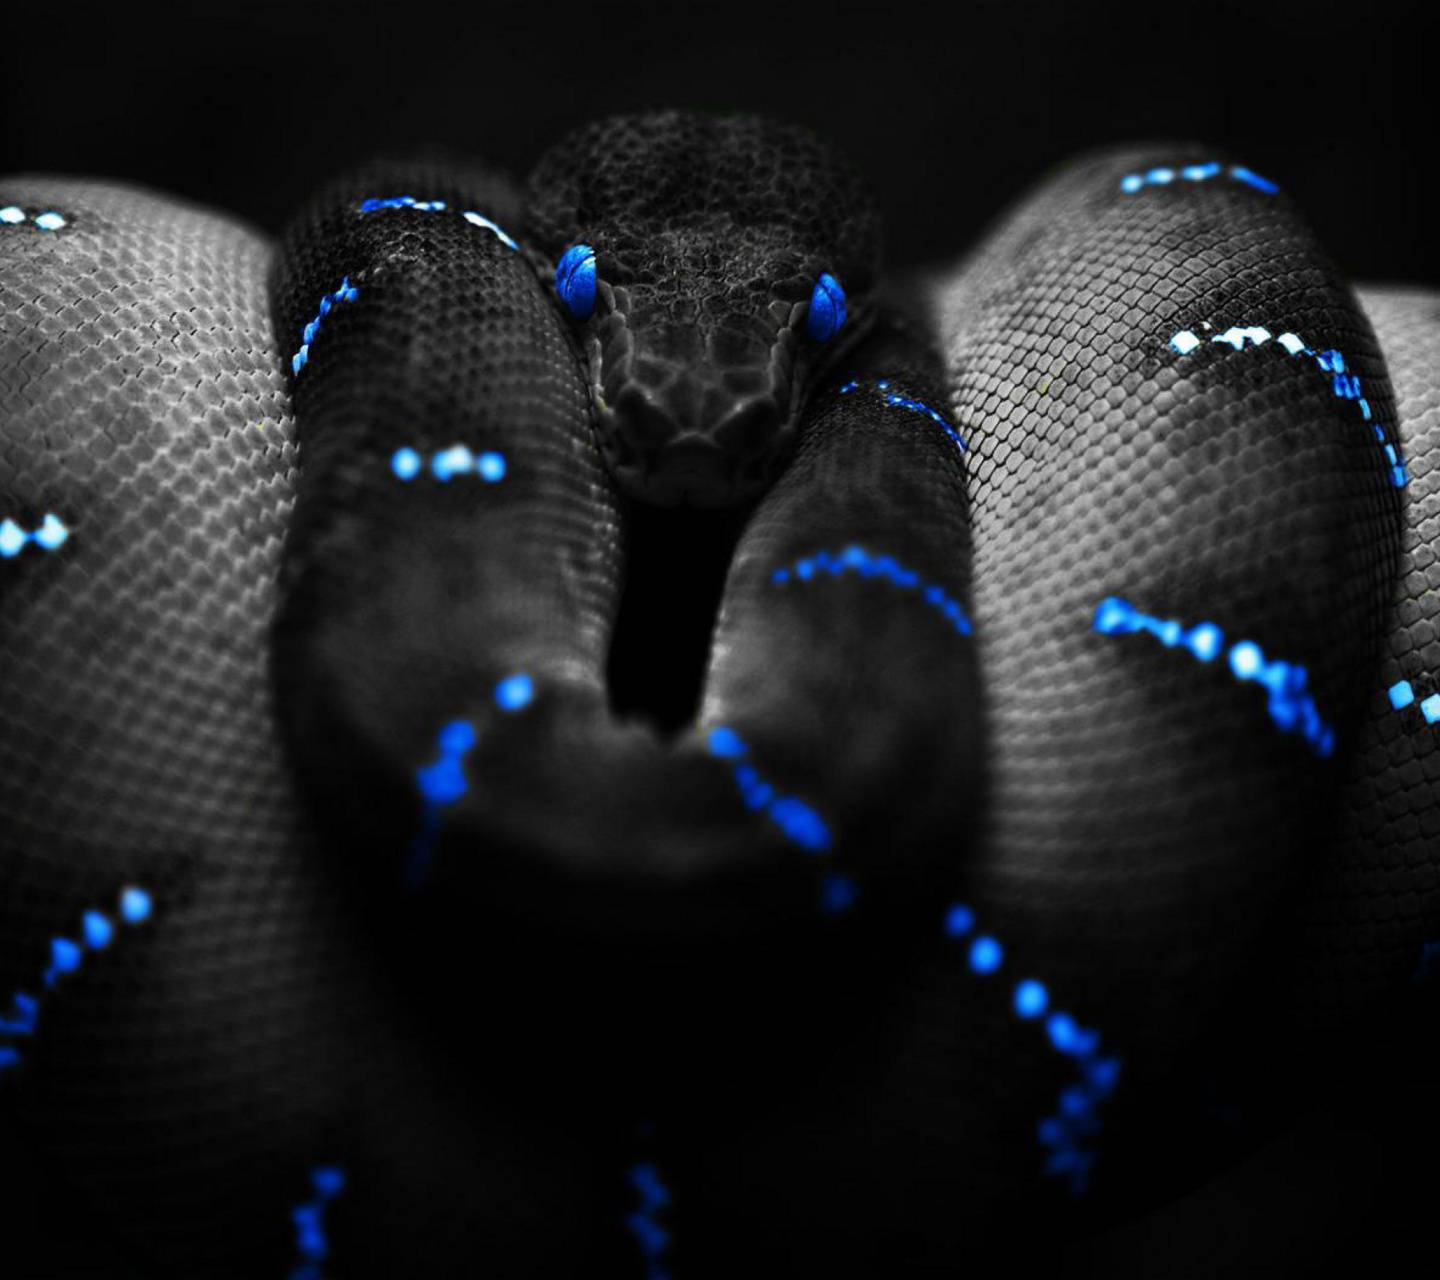 Electric snake